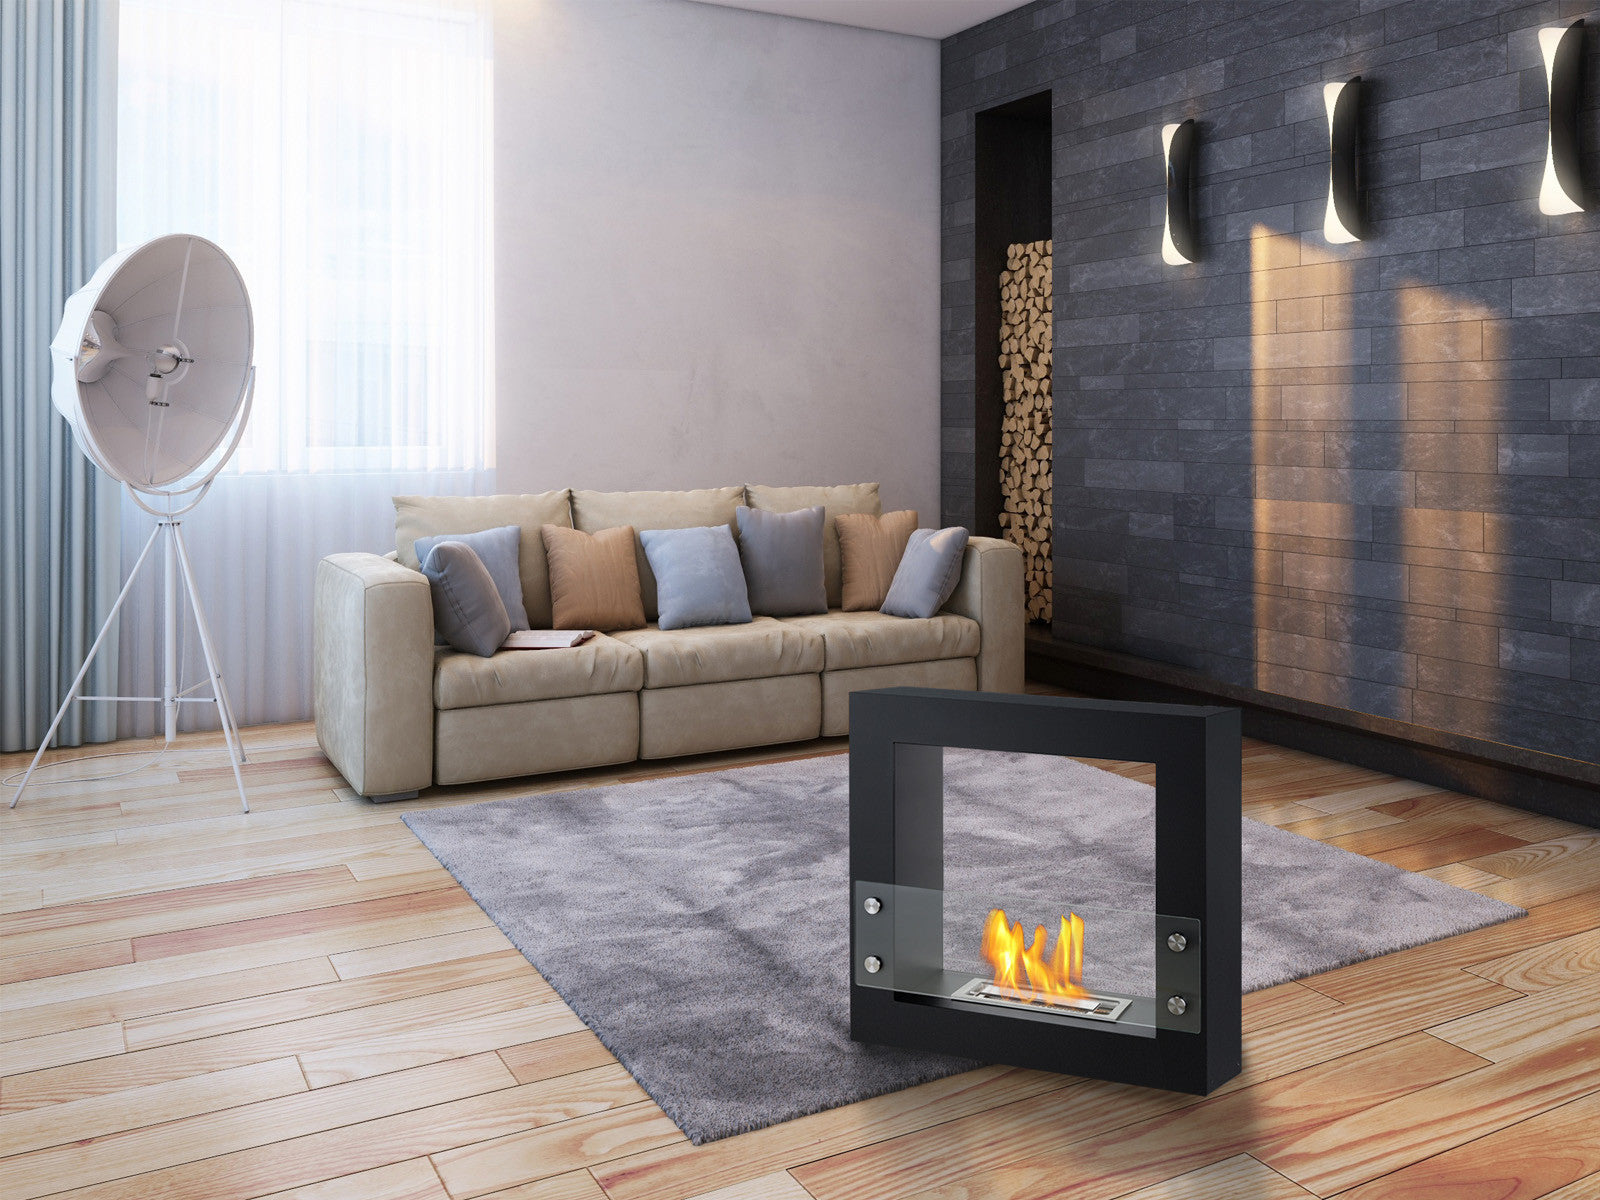 Ignis fireplaces at The Noble Flame